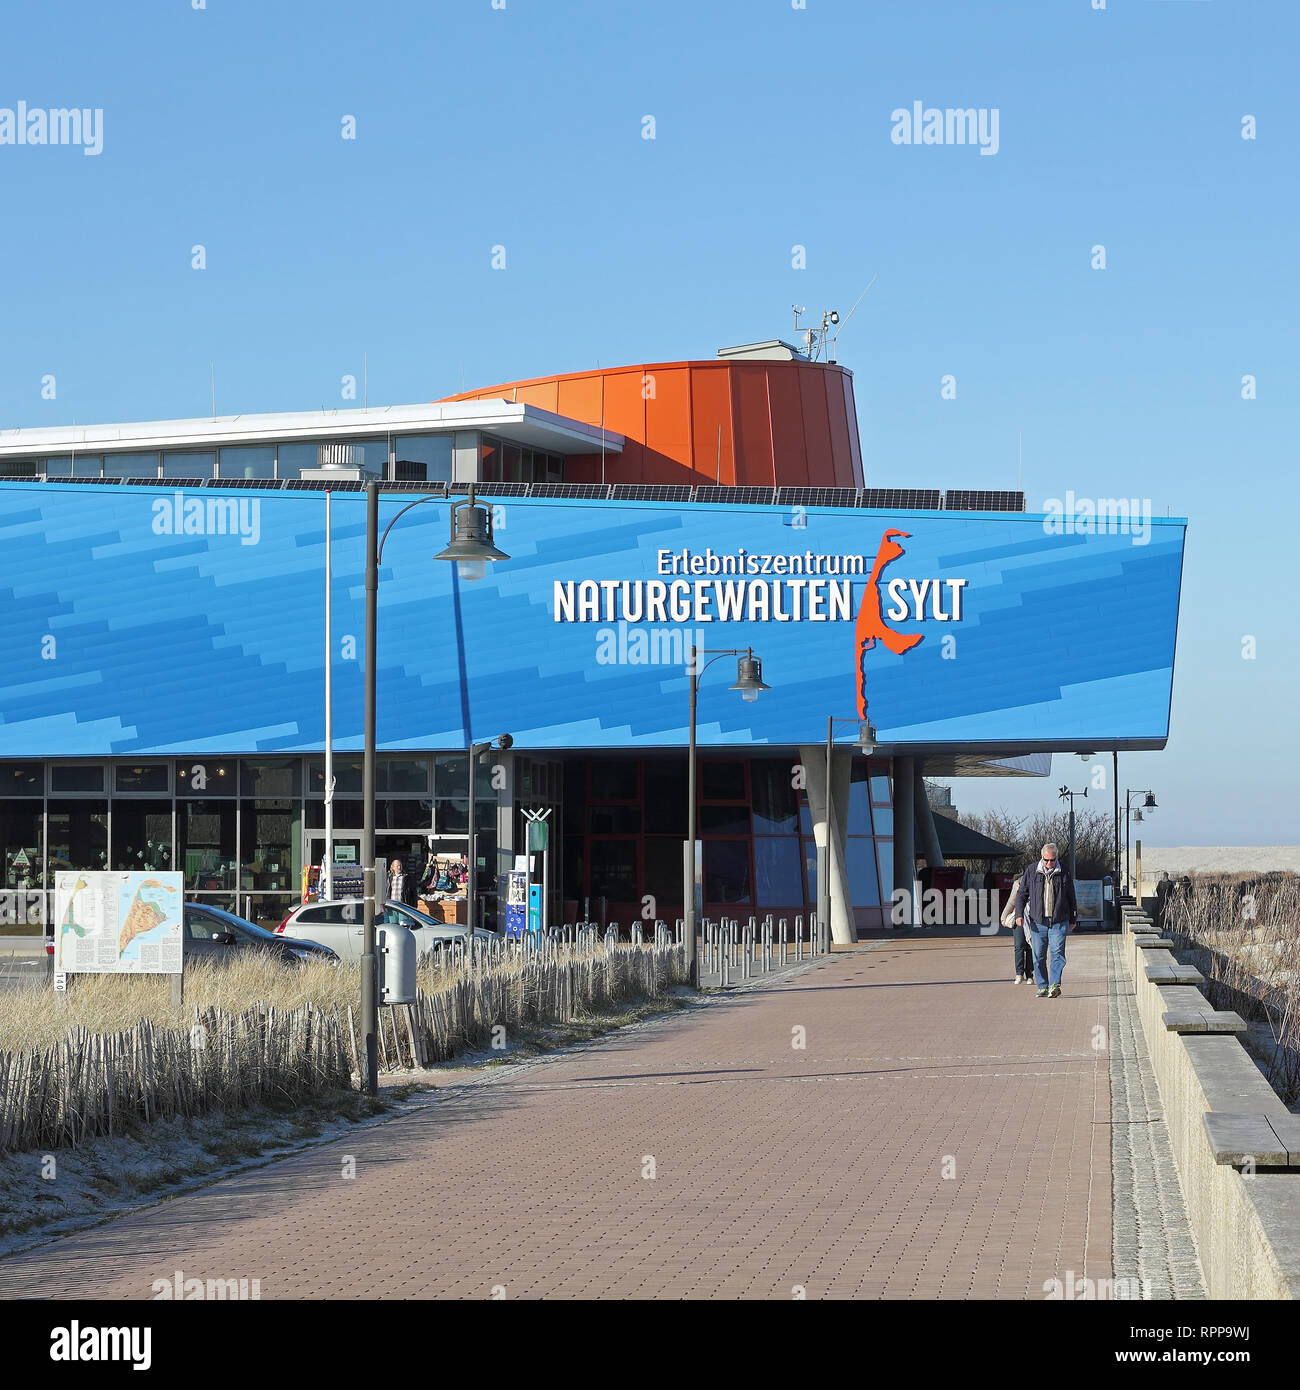 The Forces of Nature Exhibition in List on the island of Sylt - Stock Image